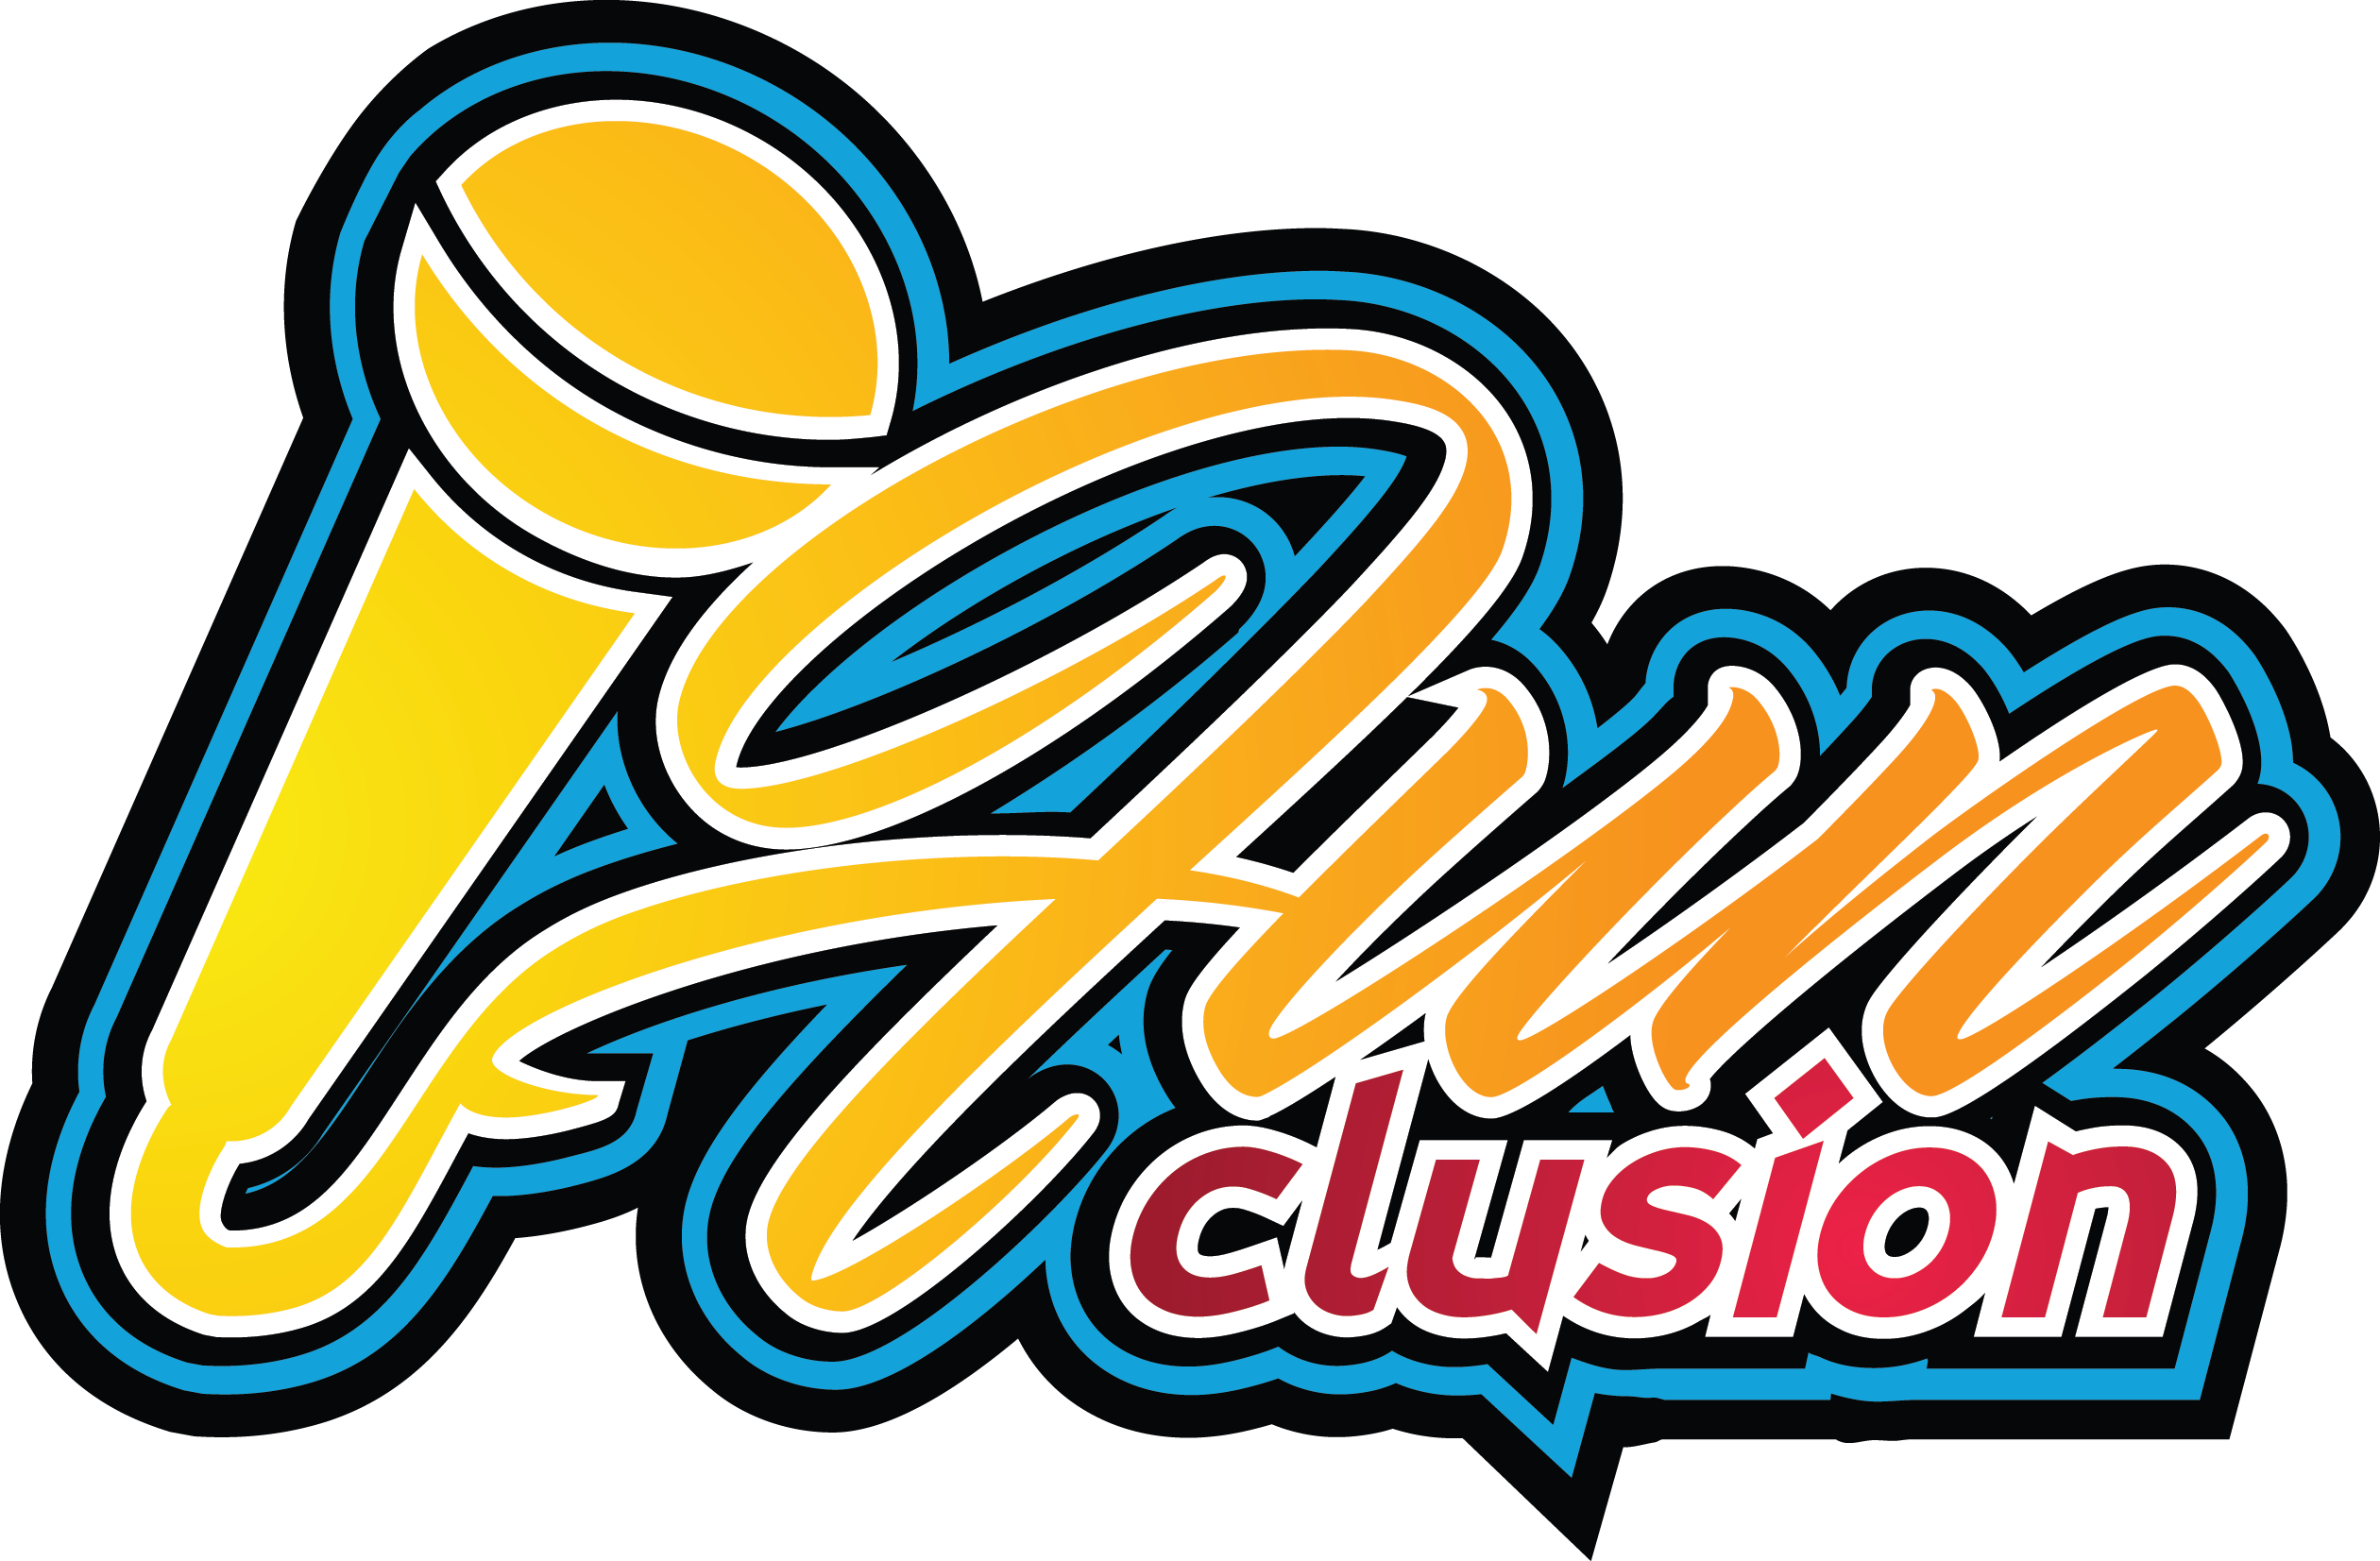 Official Funclusion logo